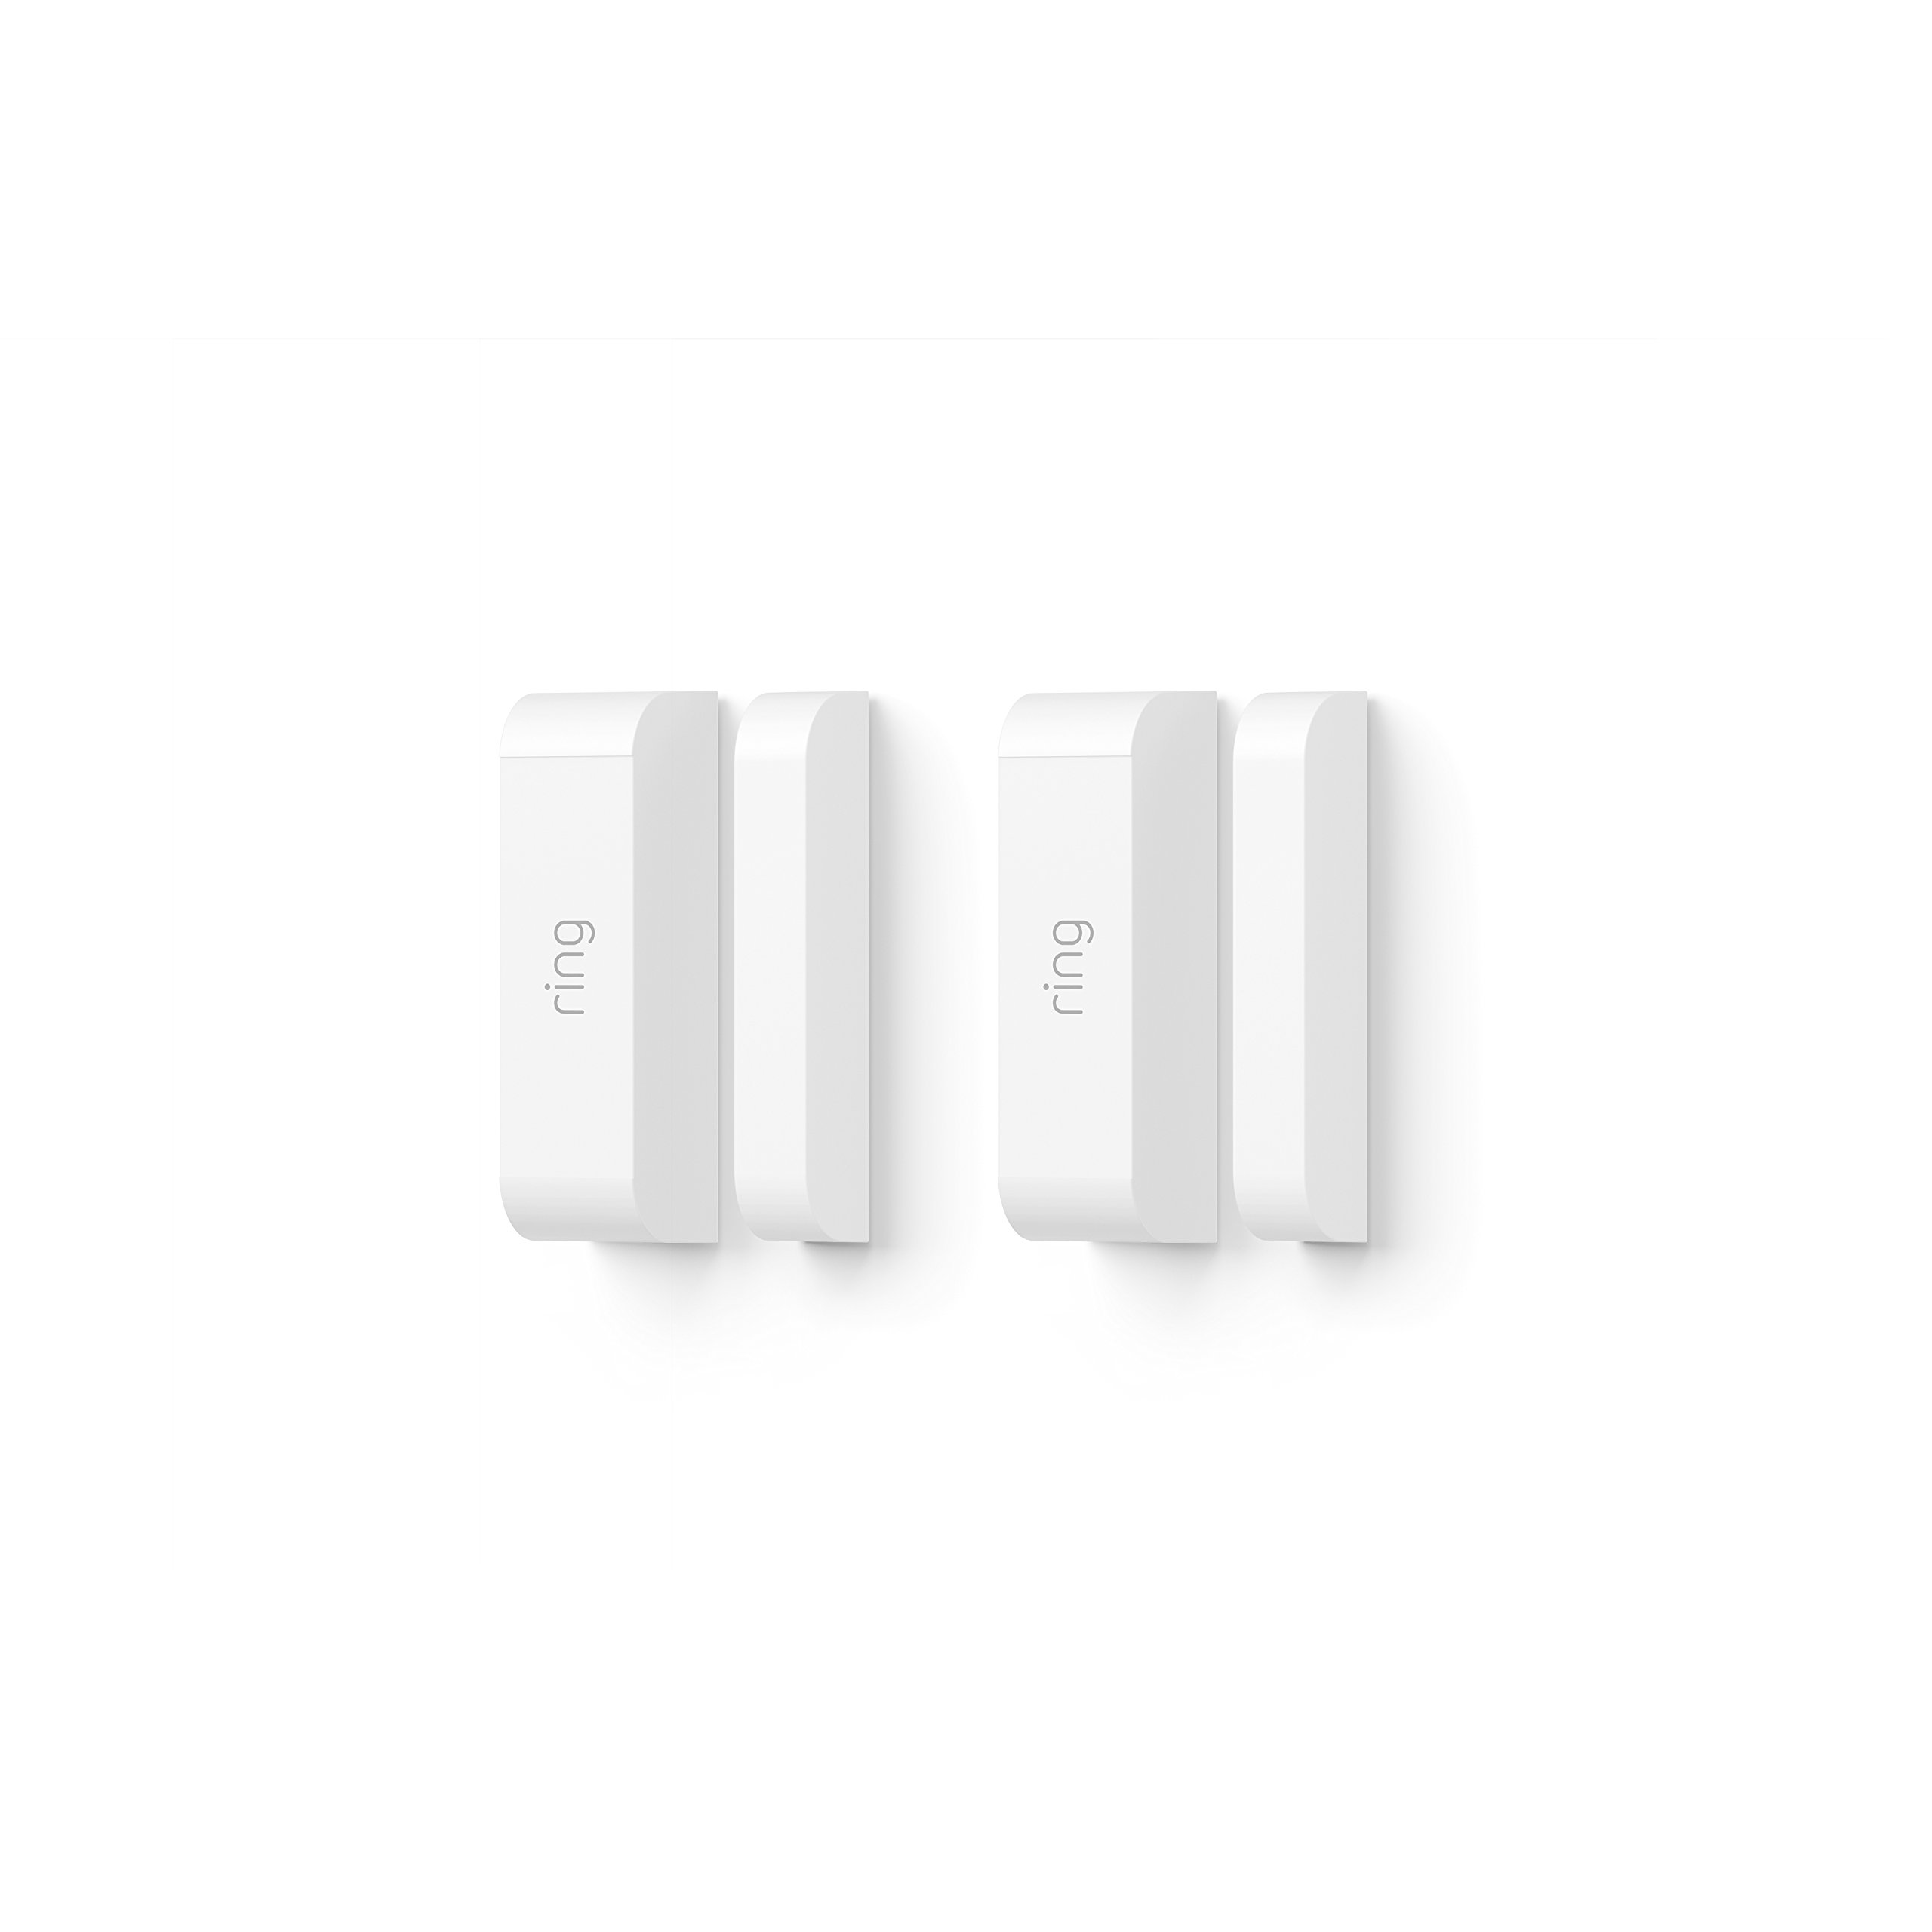 Ring Alarm Contact Sensor 2-Pack by Ring